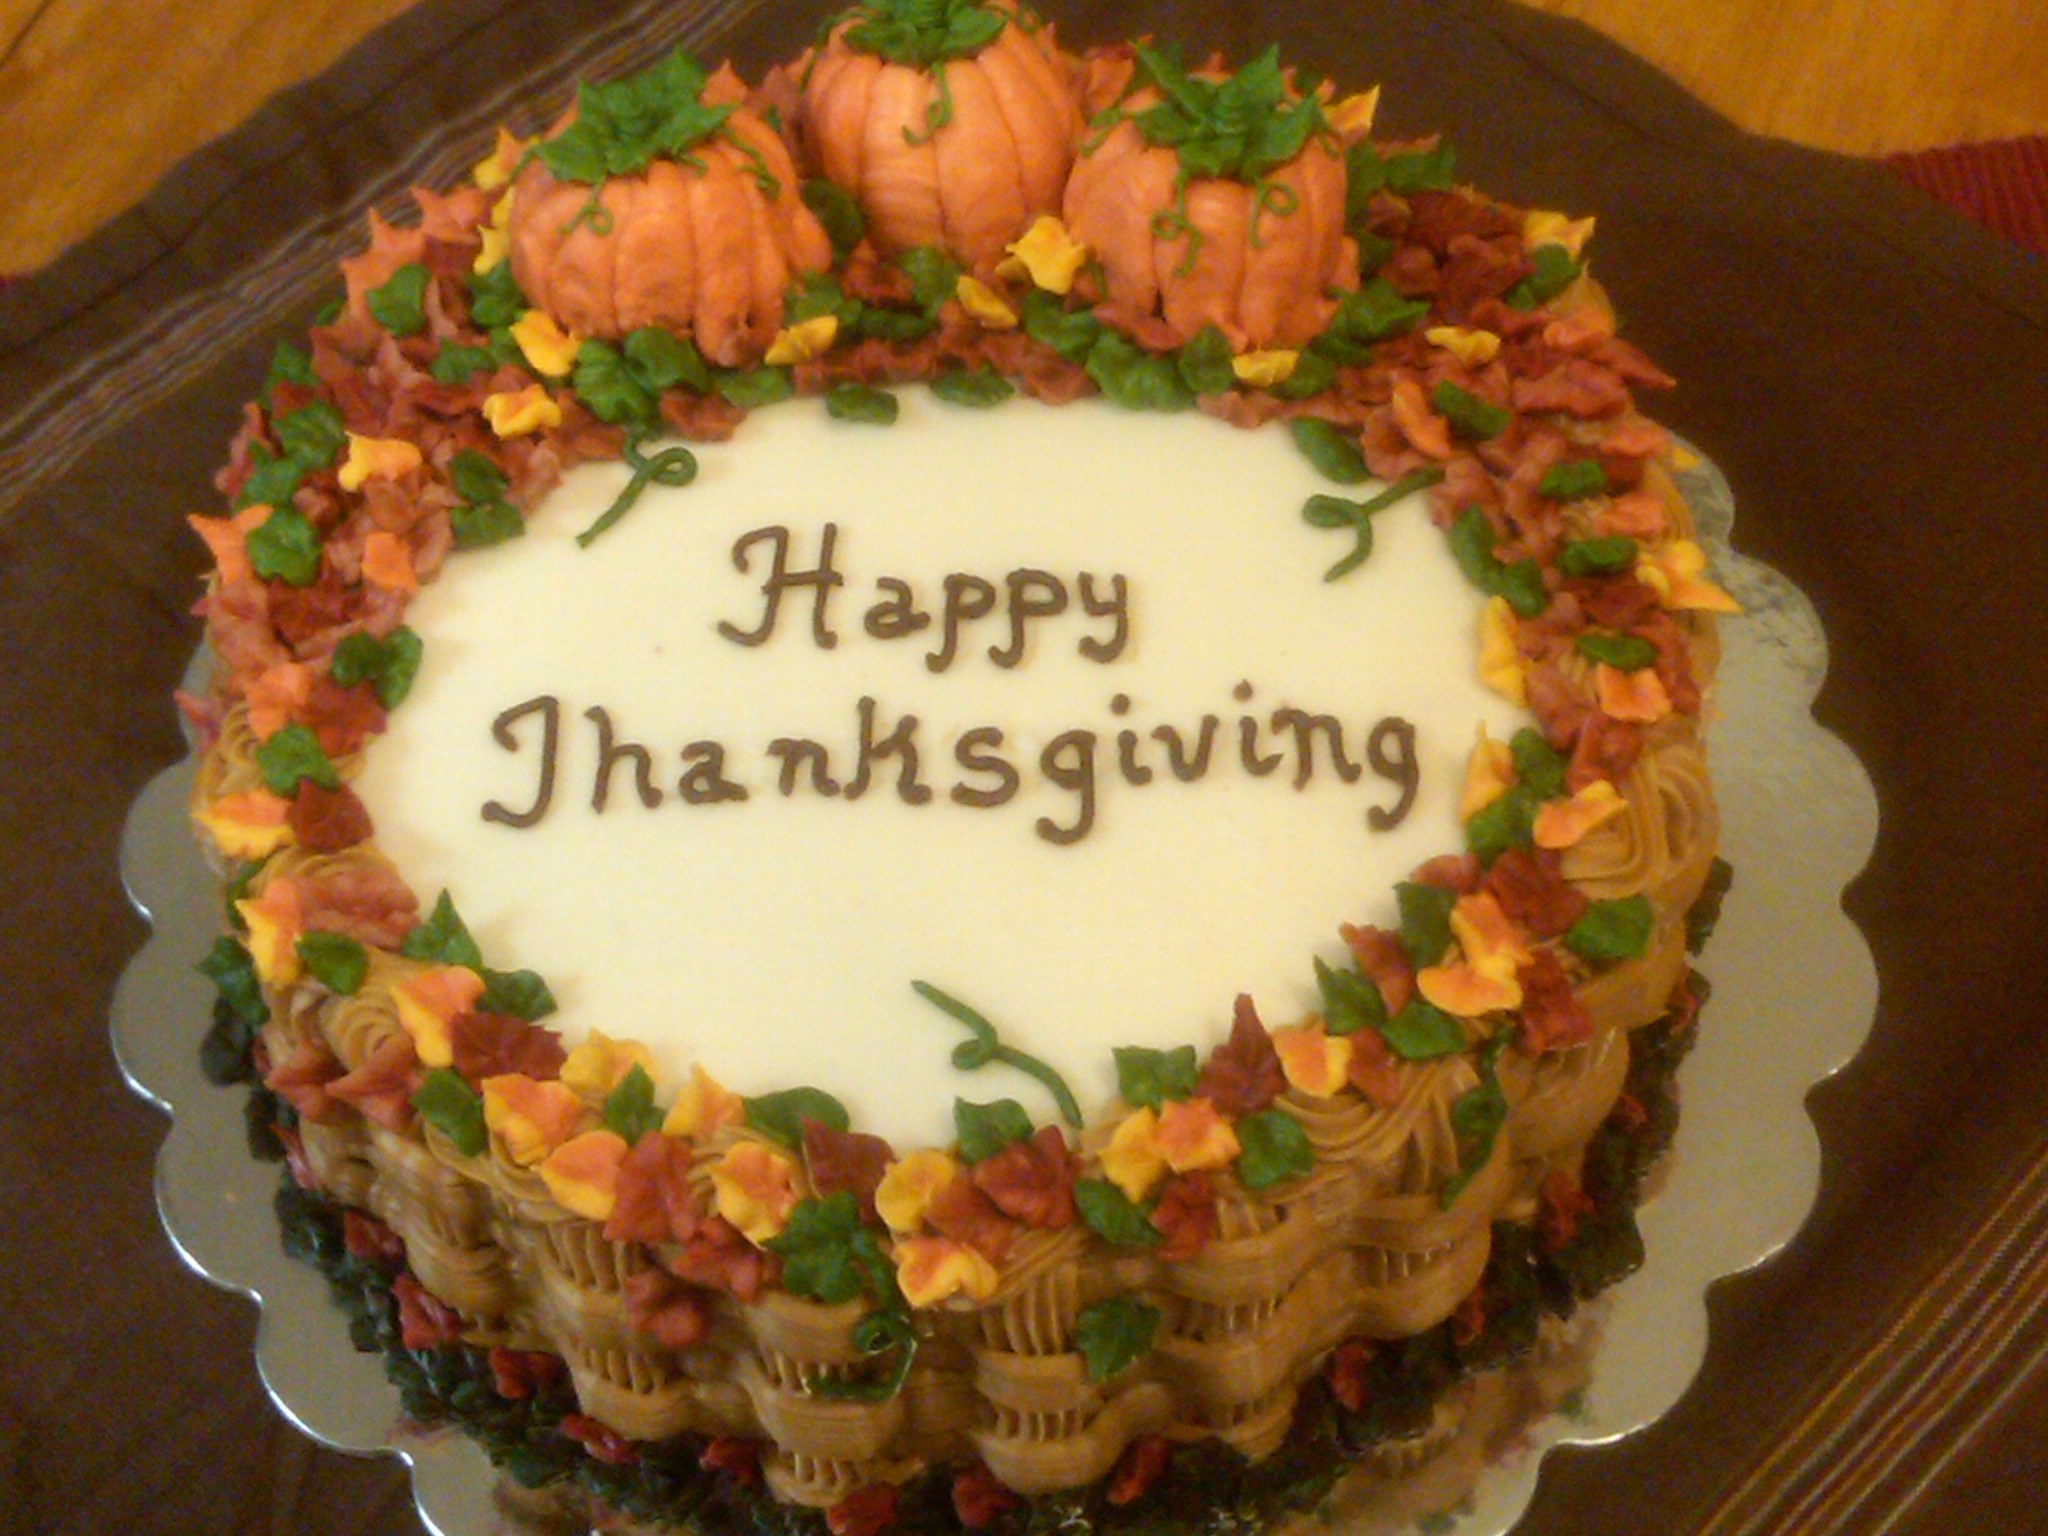 Thanksgiving Cakes     Decoration Ideas   Little Birthday Cakes Thanksgiving Cakes Ideas